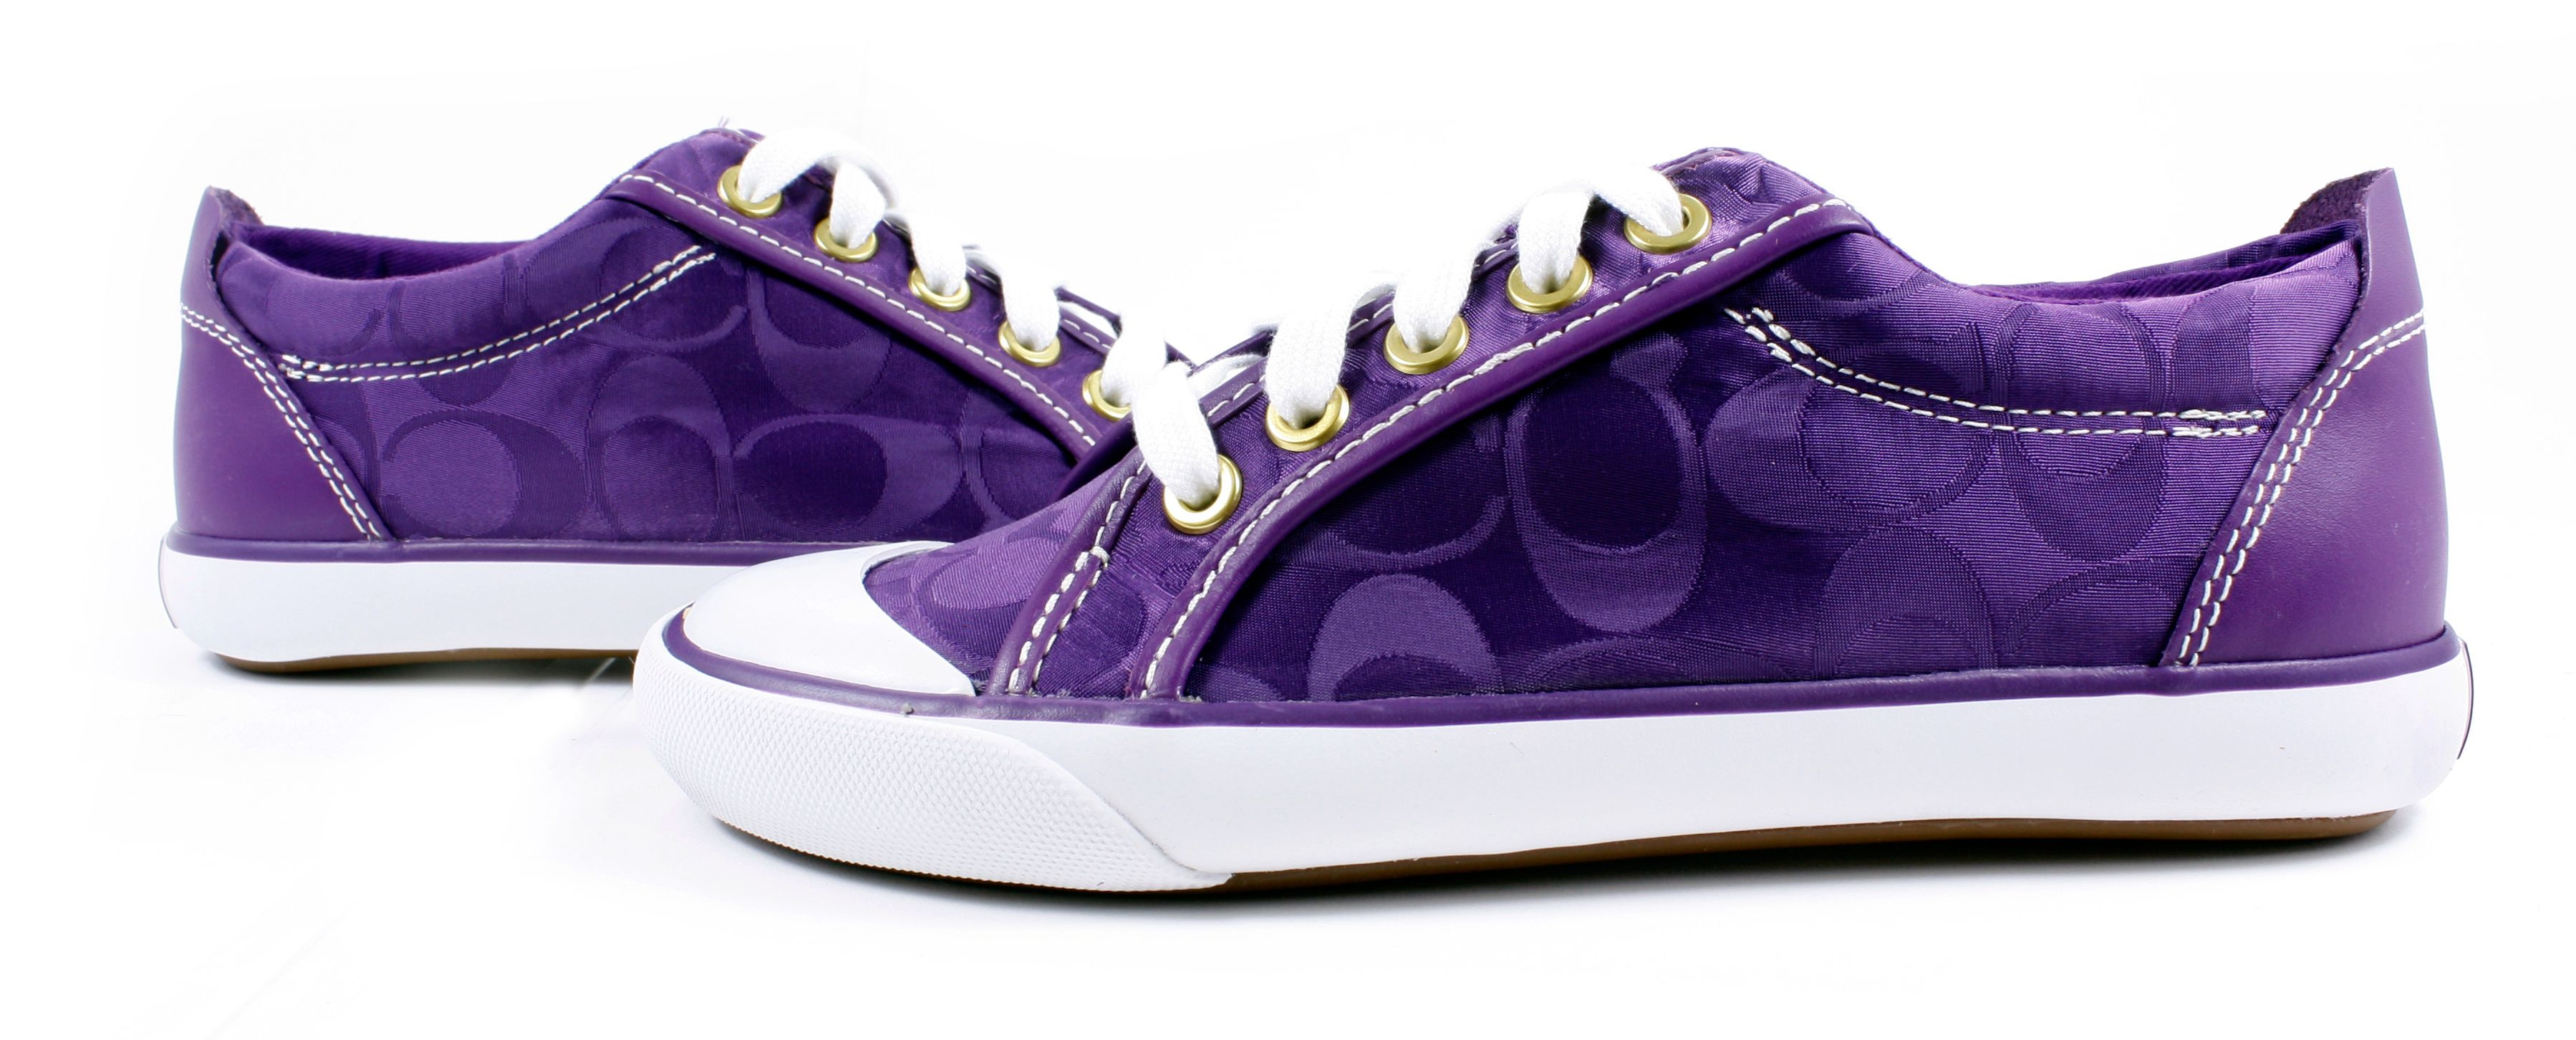 f1c9d3985df2b Details about New Coach BARRETT Signature Sneakers Lace-Up Tennis ...